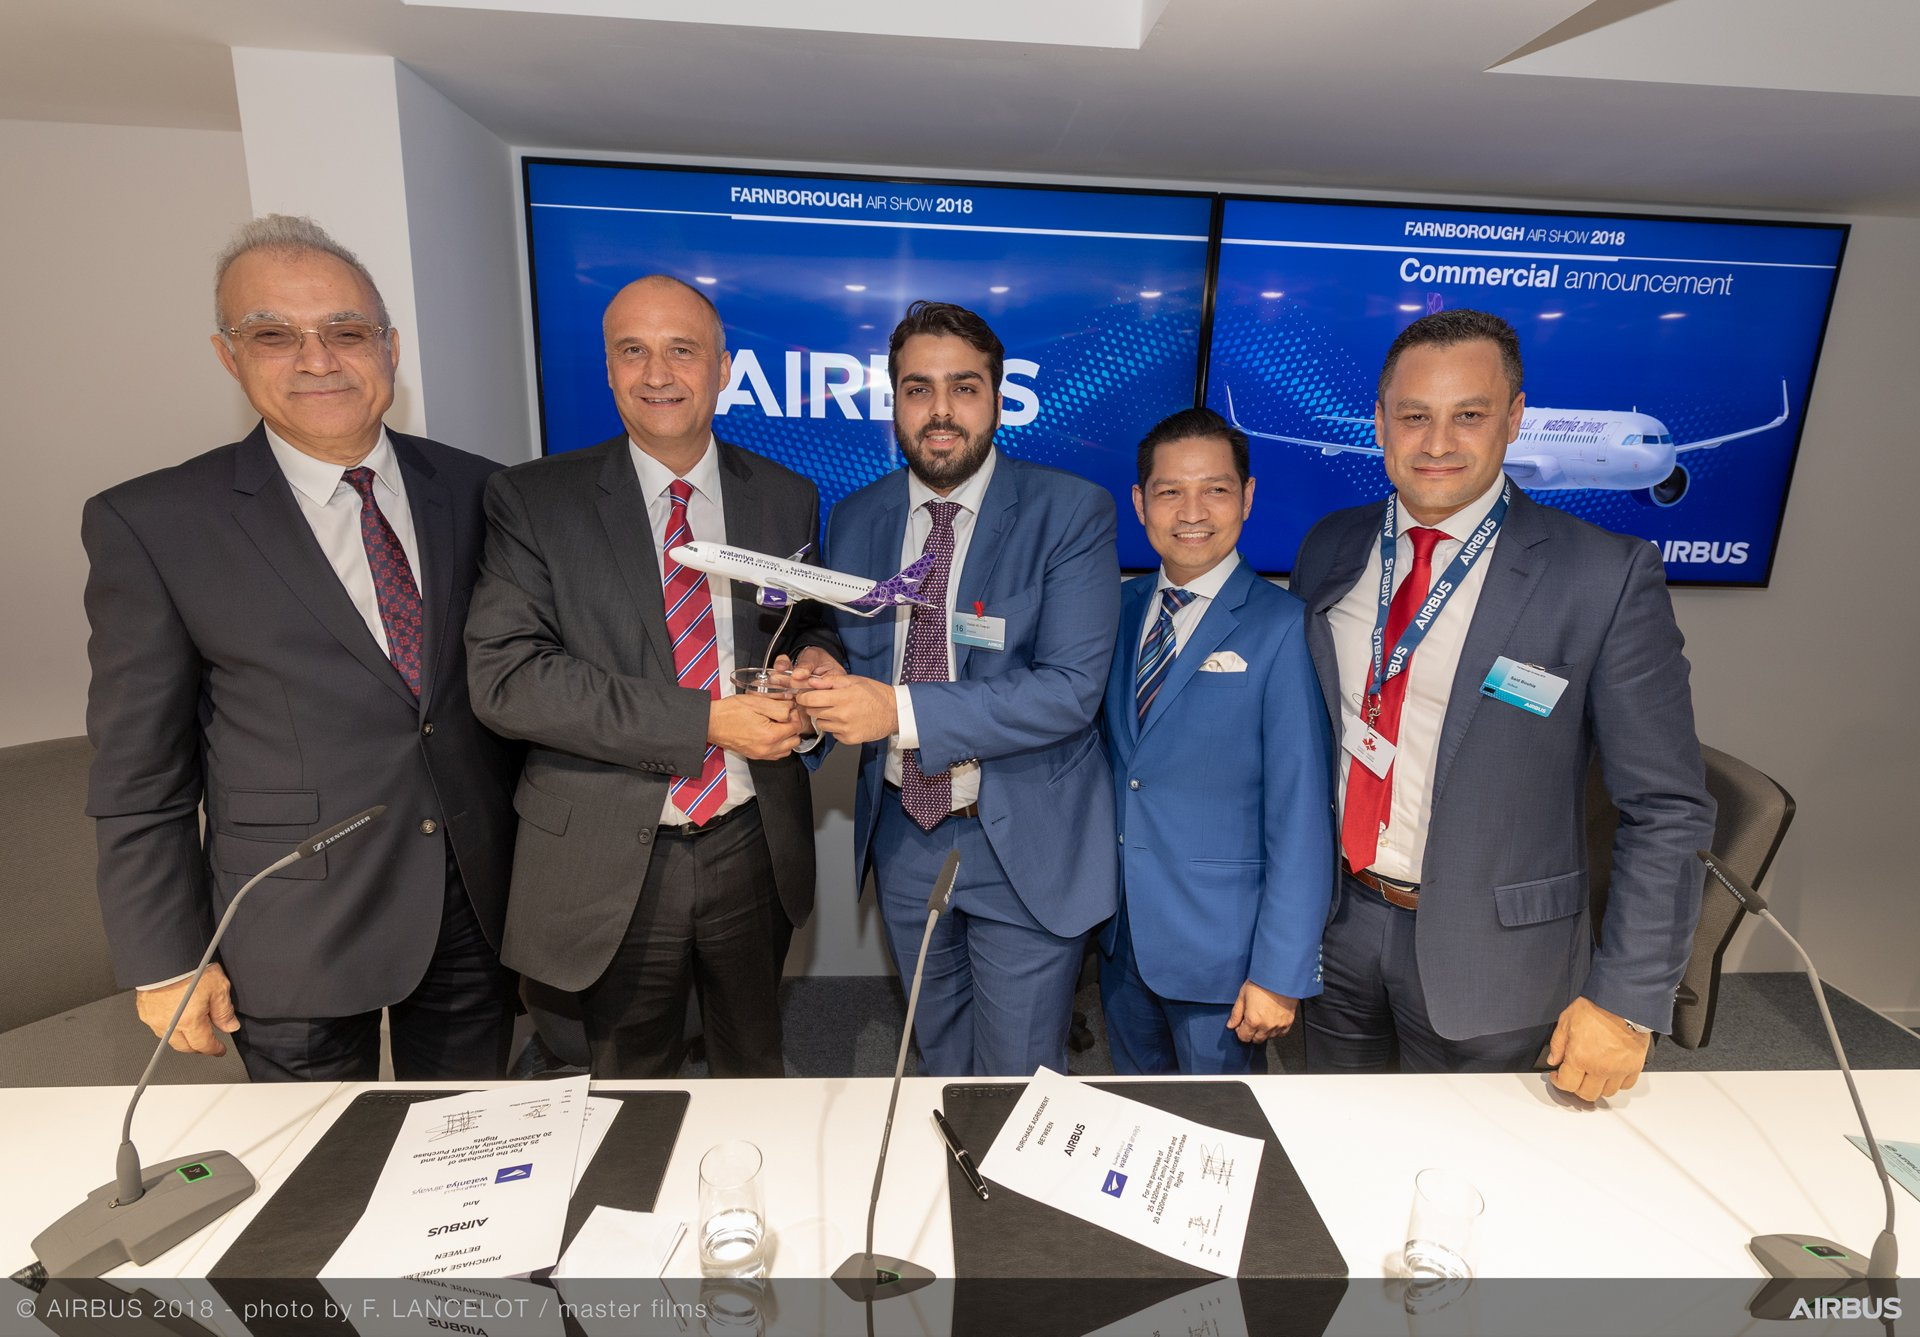 At the 2018 Farnborough Airshow press conference announcing Golden Falcon Aviation's order of 25 Airbus A320neo Family aircraft for Kuwait's Wataniya Airways are Rakan Al-Tuwaijri, Chief Executive Officer of Golden Falcon Aviation (at centre) and Eric Schulz, Airbus Chief Commercial Officer (second from left)